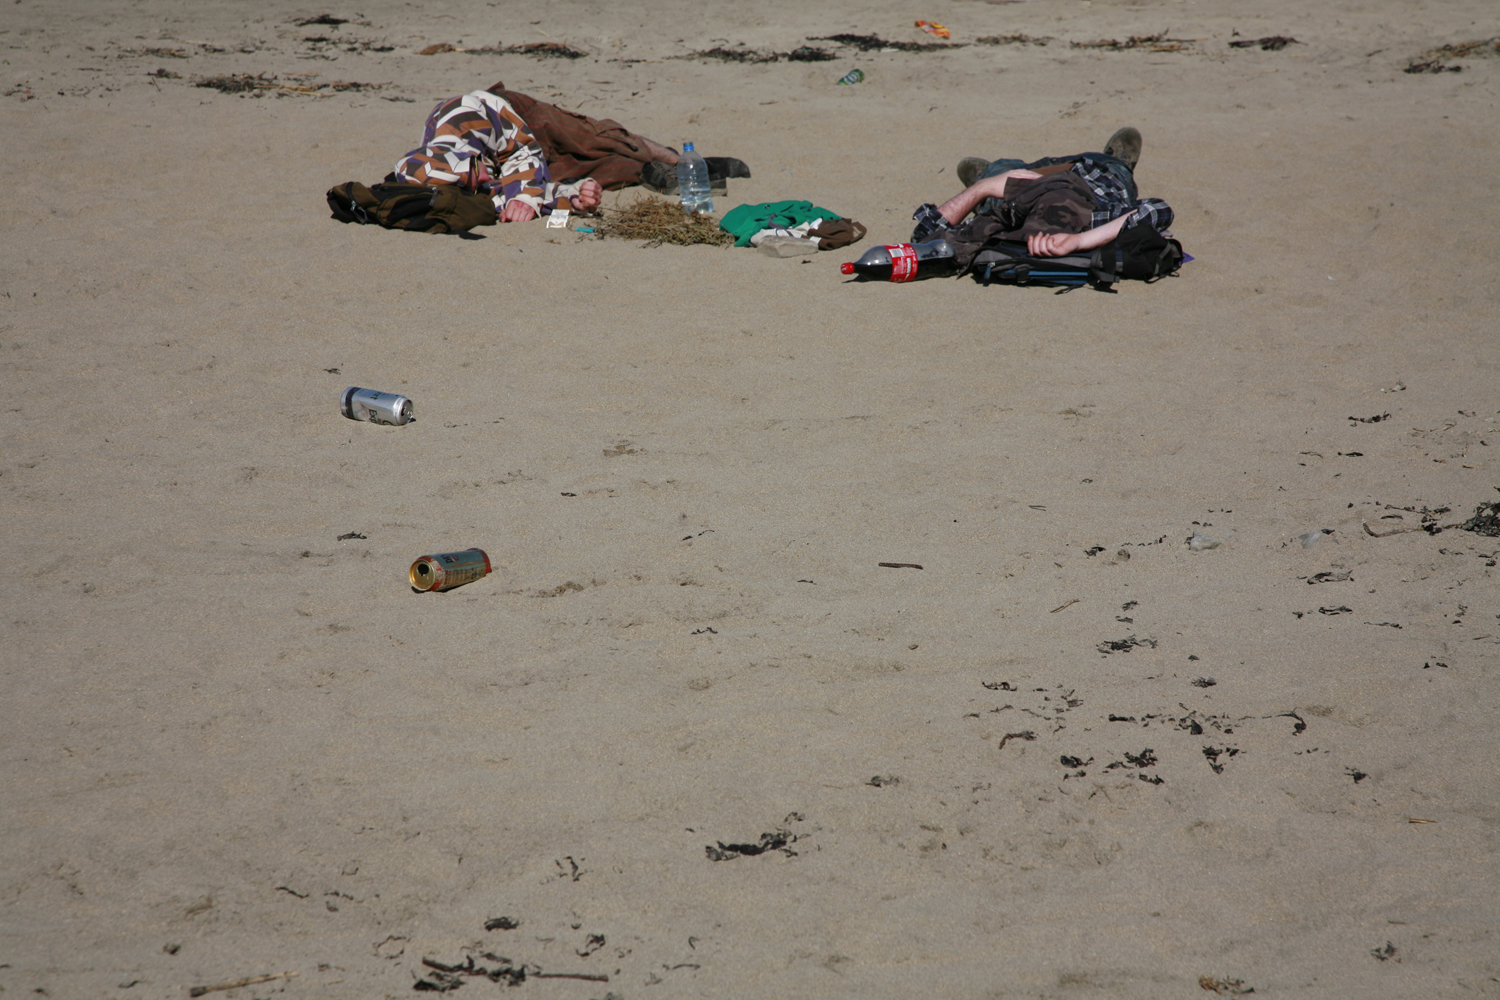 A documentary photograph of two hung over men laying on an irish beach with empty cans around them